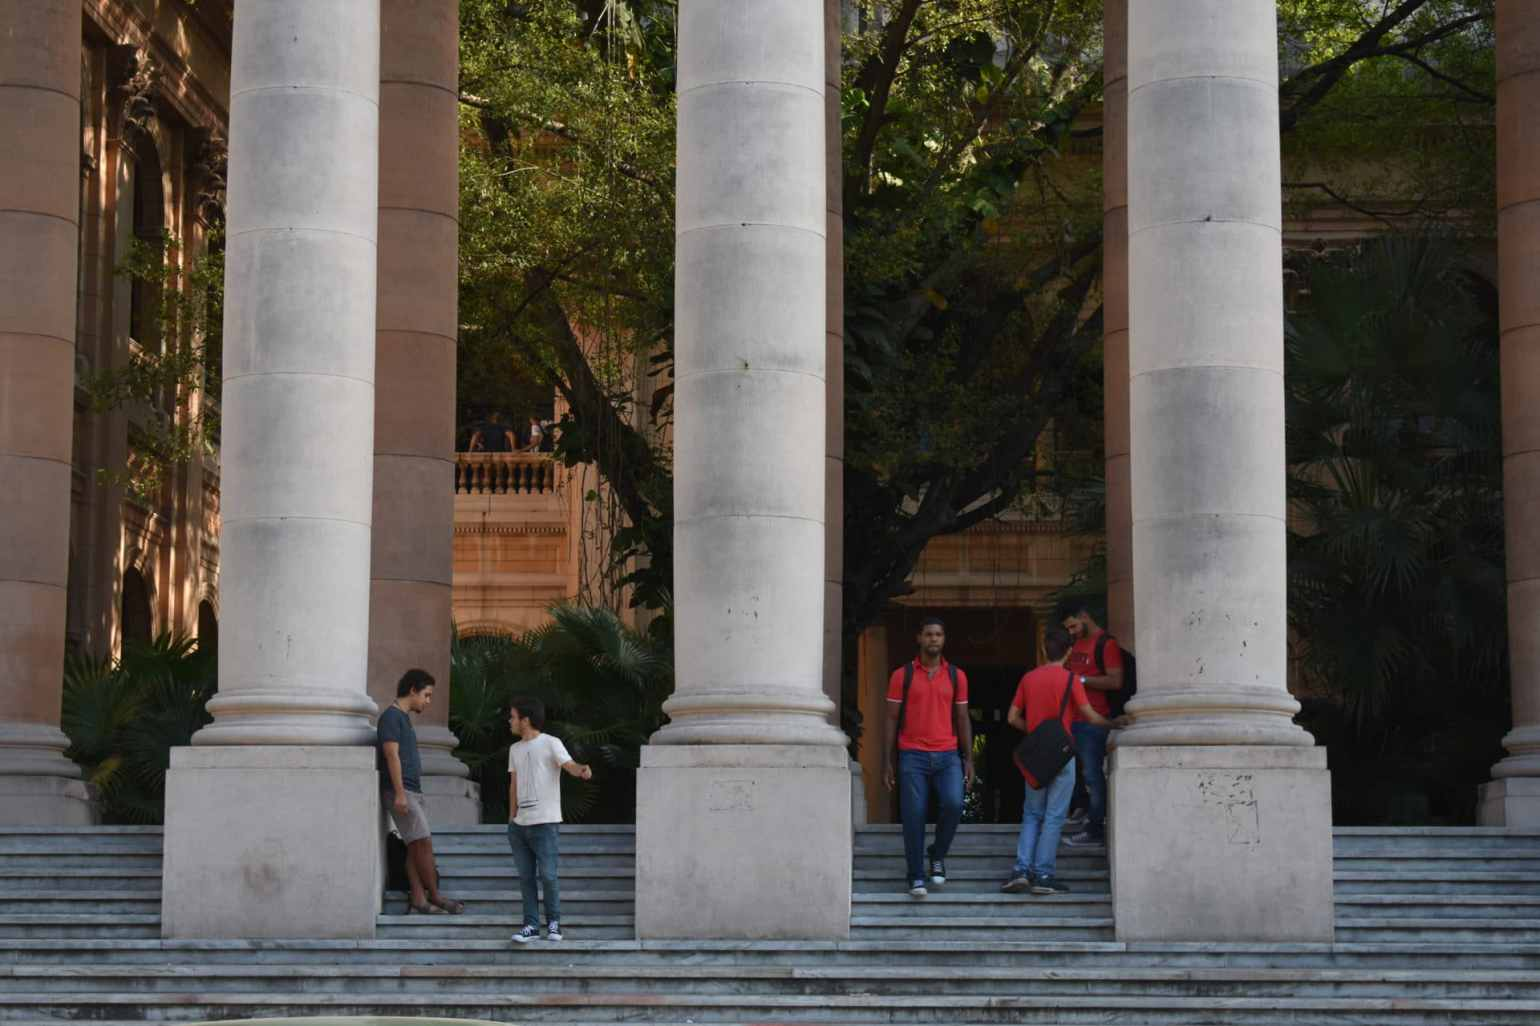 Cuban students hanging out at the University of Havana